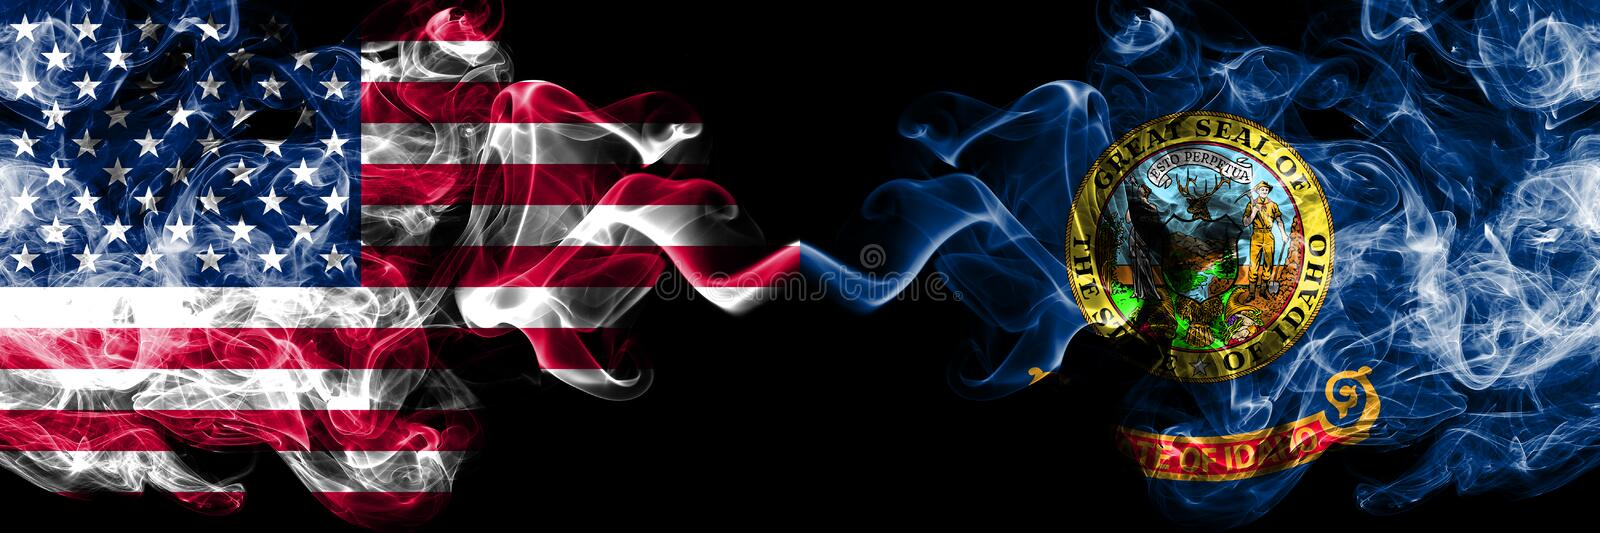 United States of America, USA vs Idaho state background abstract concept peace smokes flags.  vector illustration